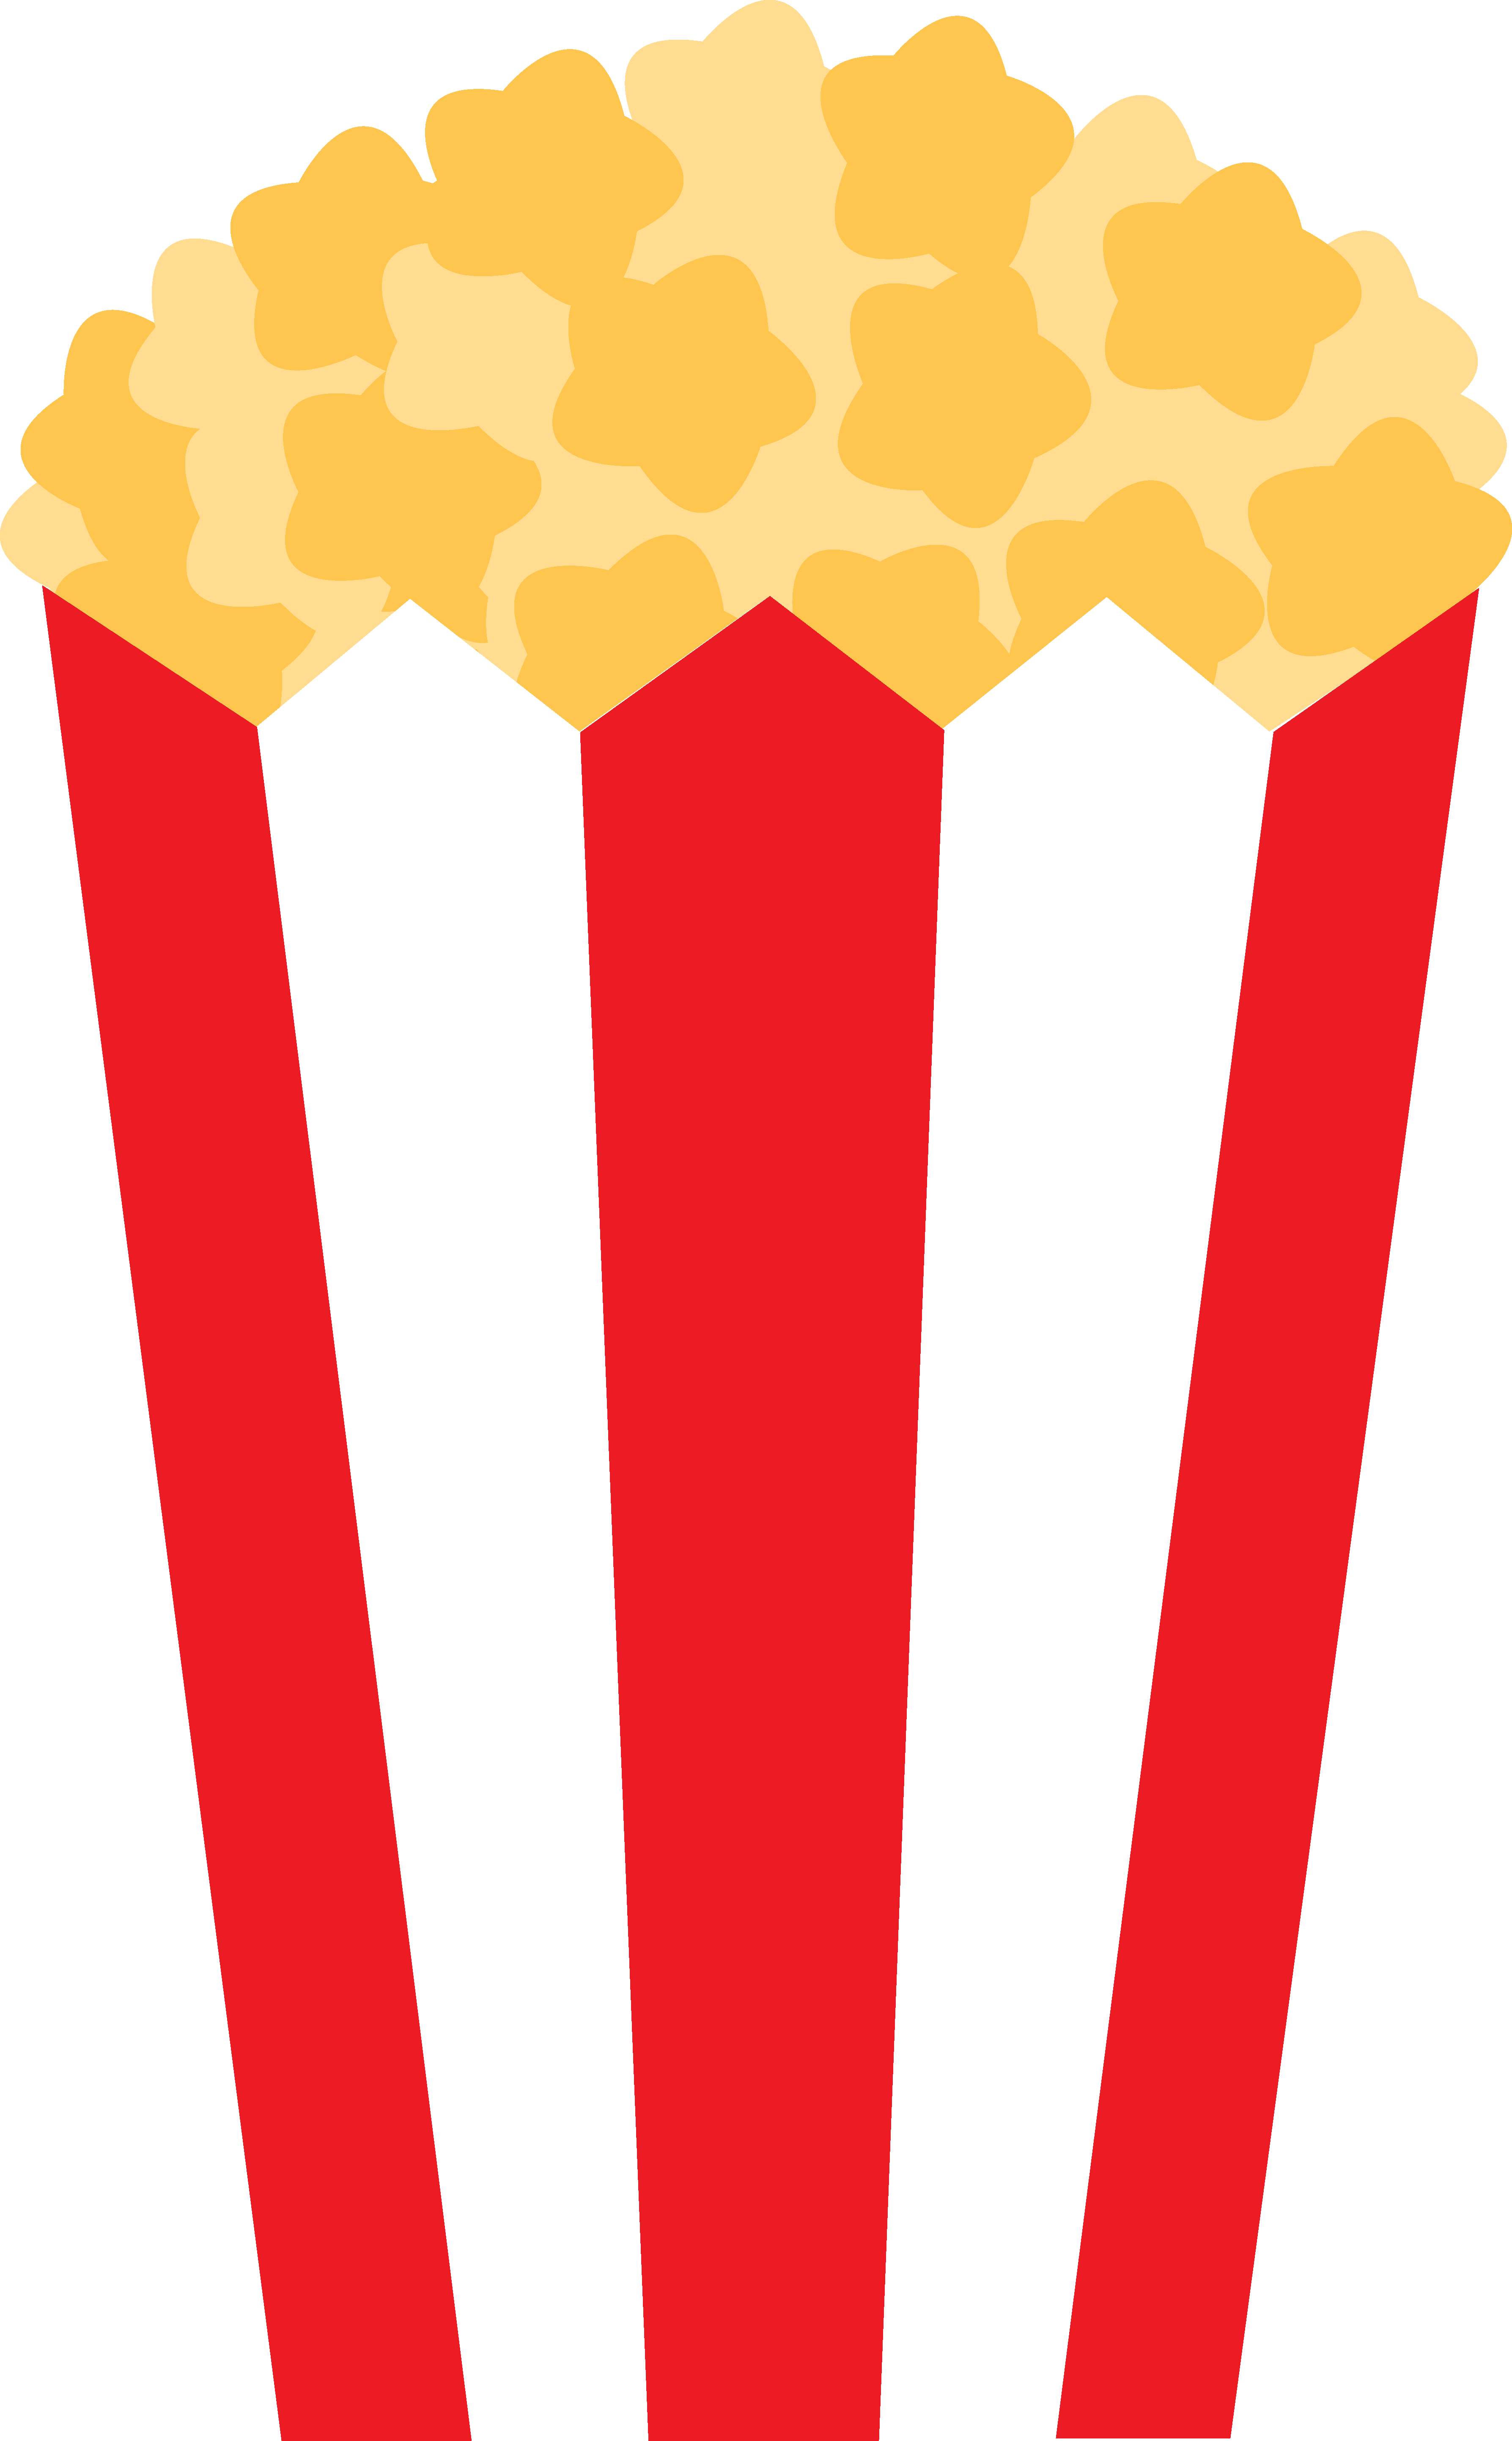 3575x5770 Popcorn Clipart Border Free Clipart Images